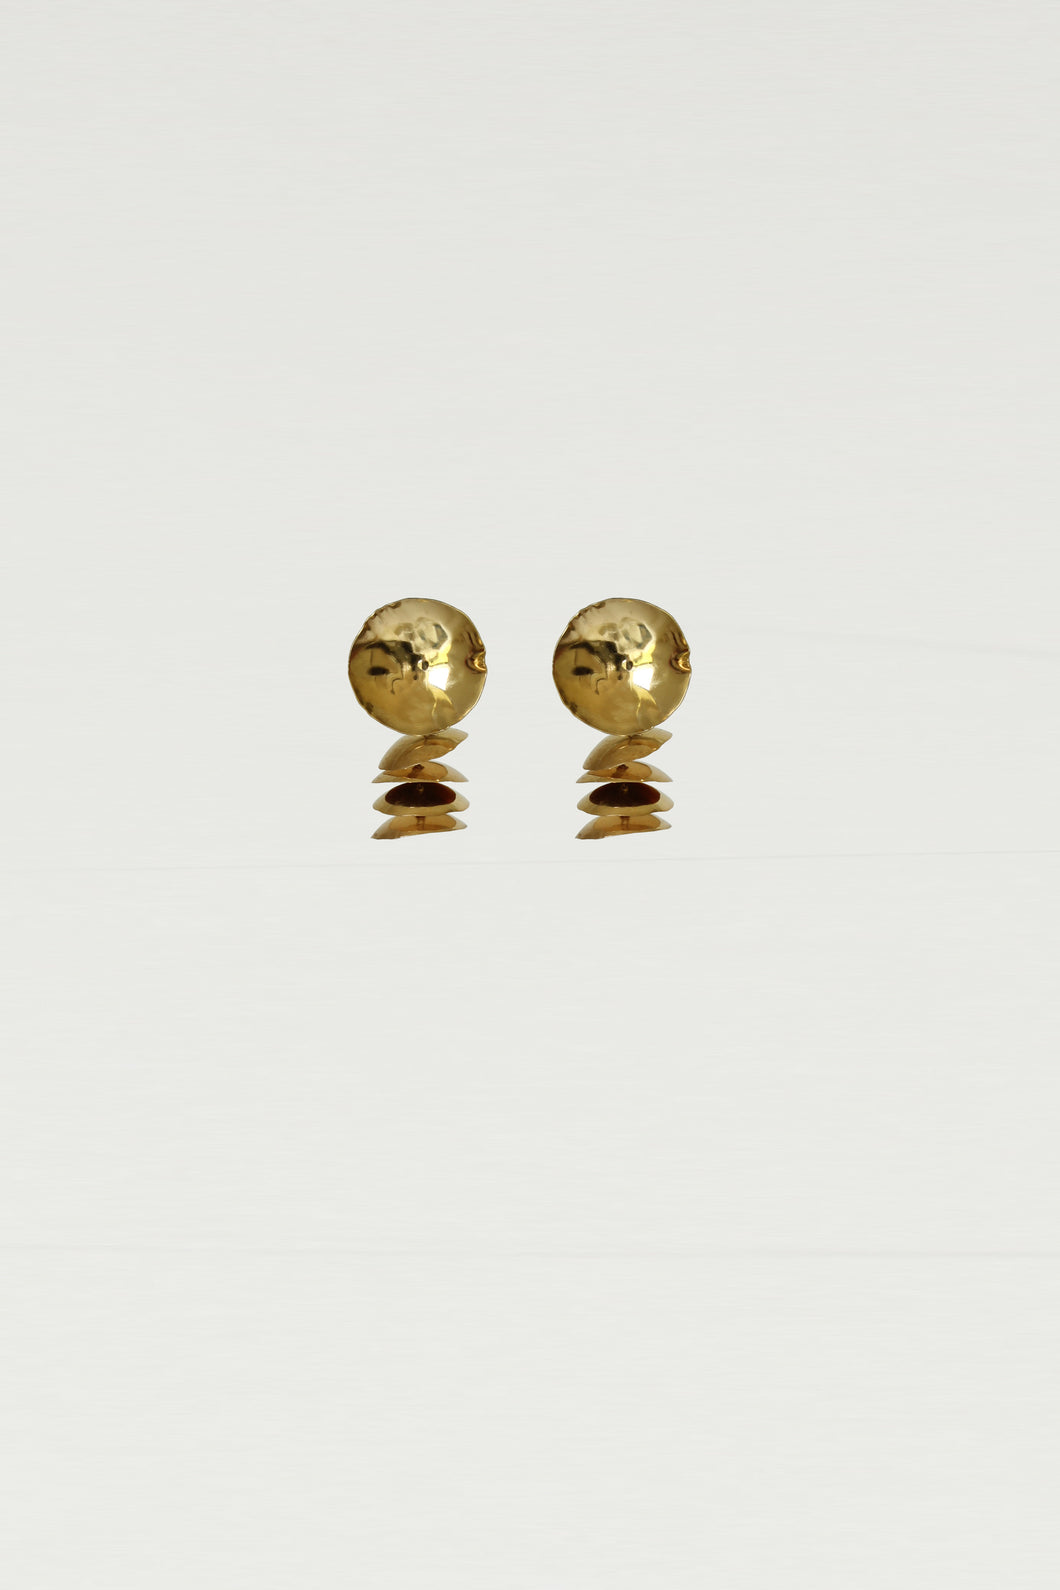 Series 6, earring 4, gold - PRE-ORDER